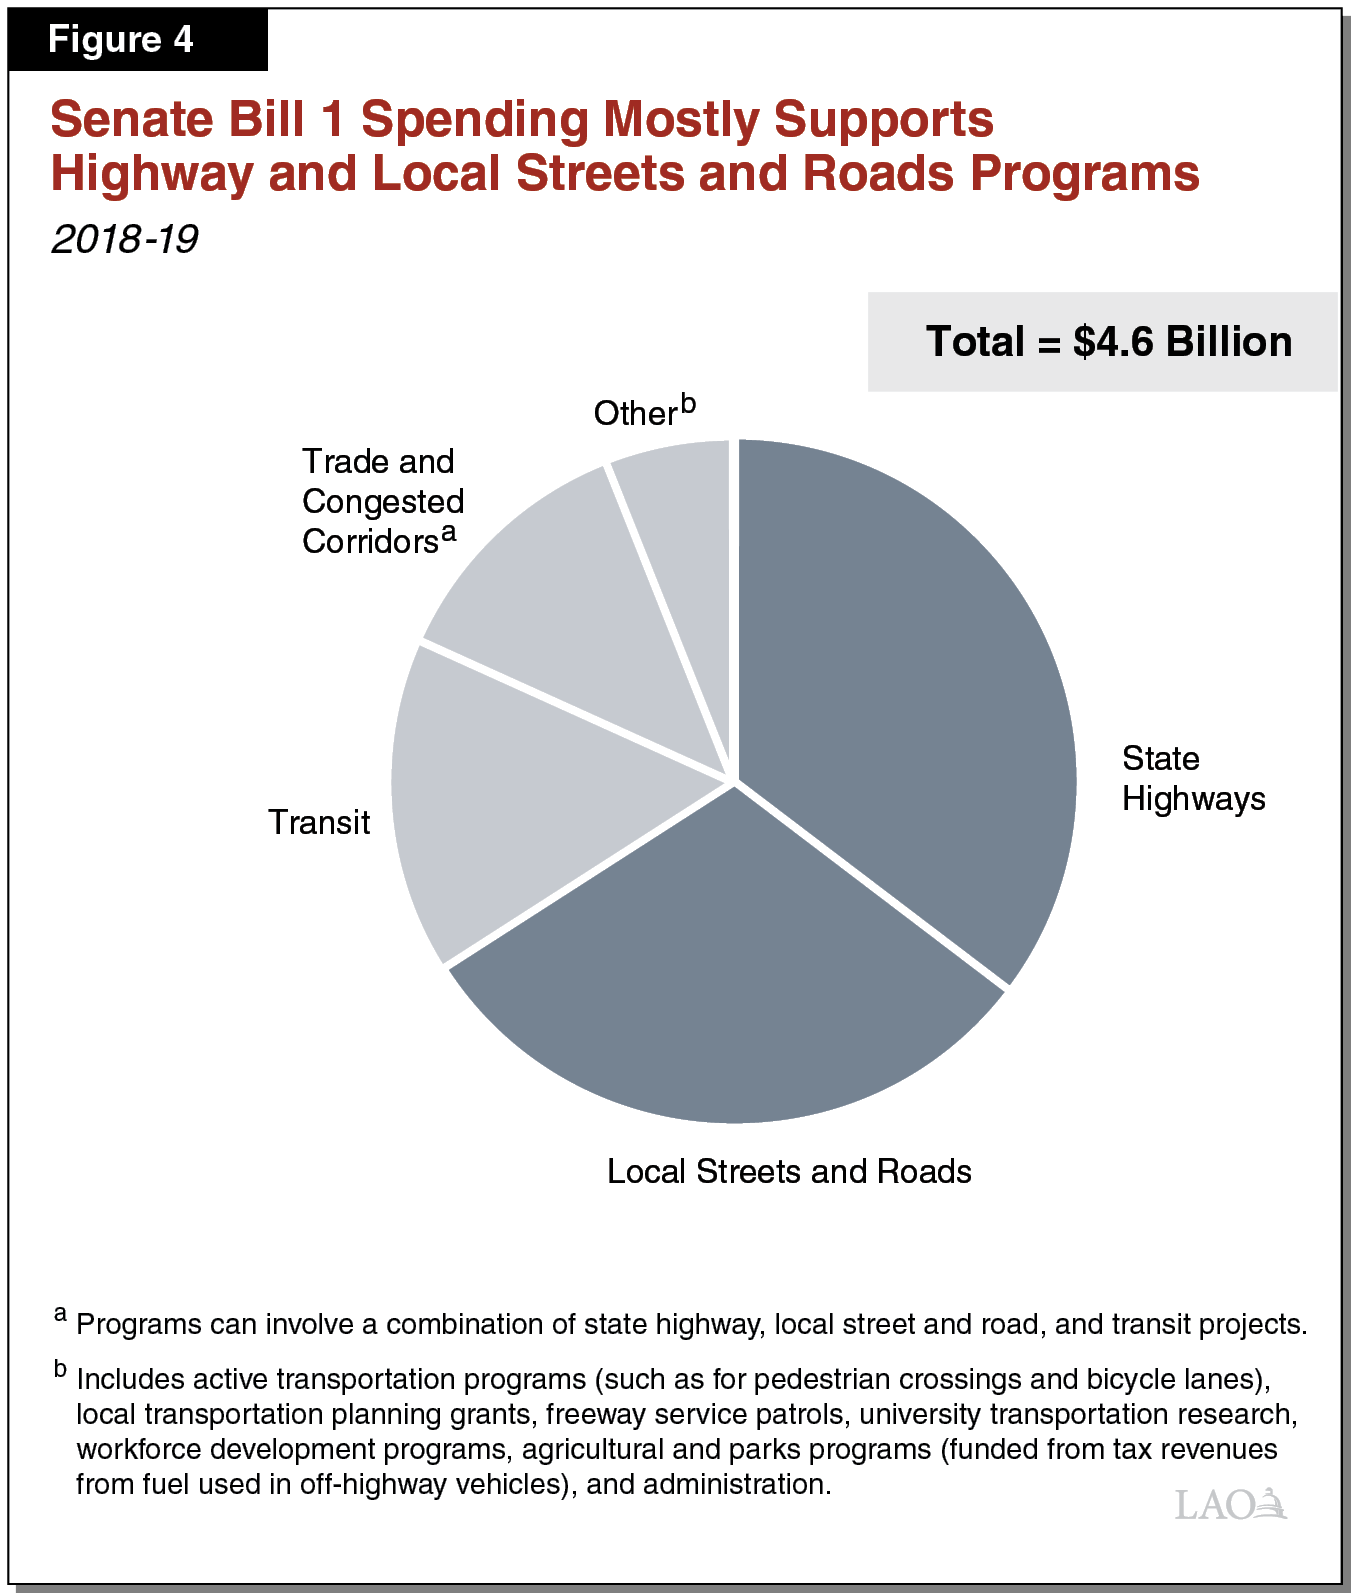 Figure 4 - Senate Bill 1 Spending Mostly Supports Highway and Local Streets and Roads Programs